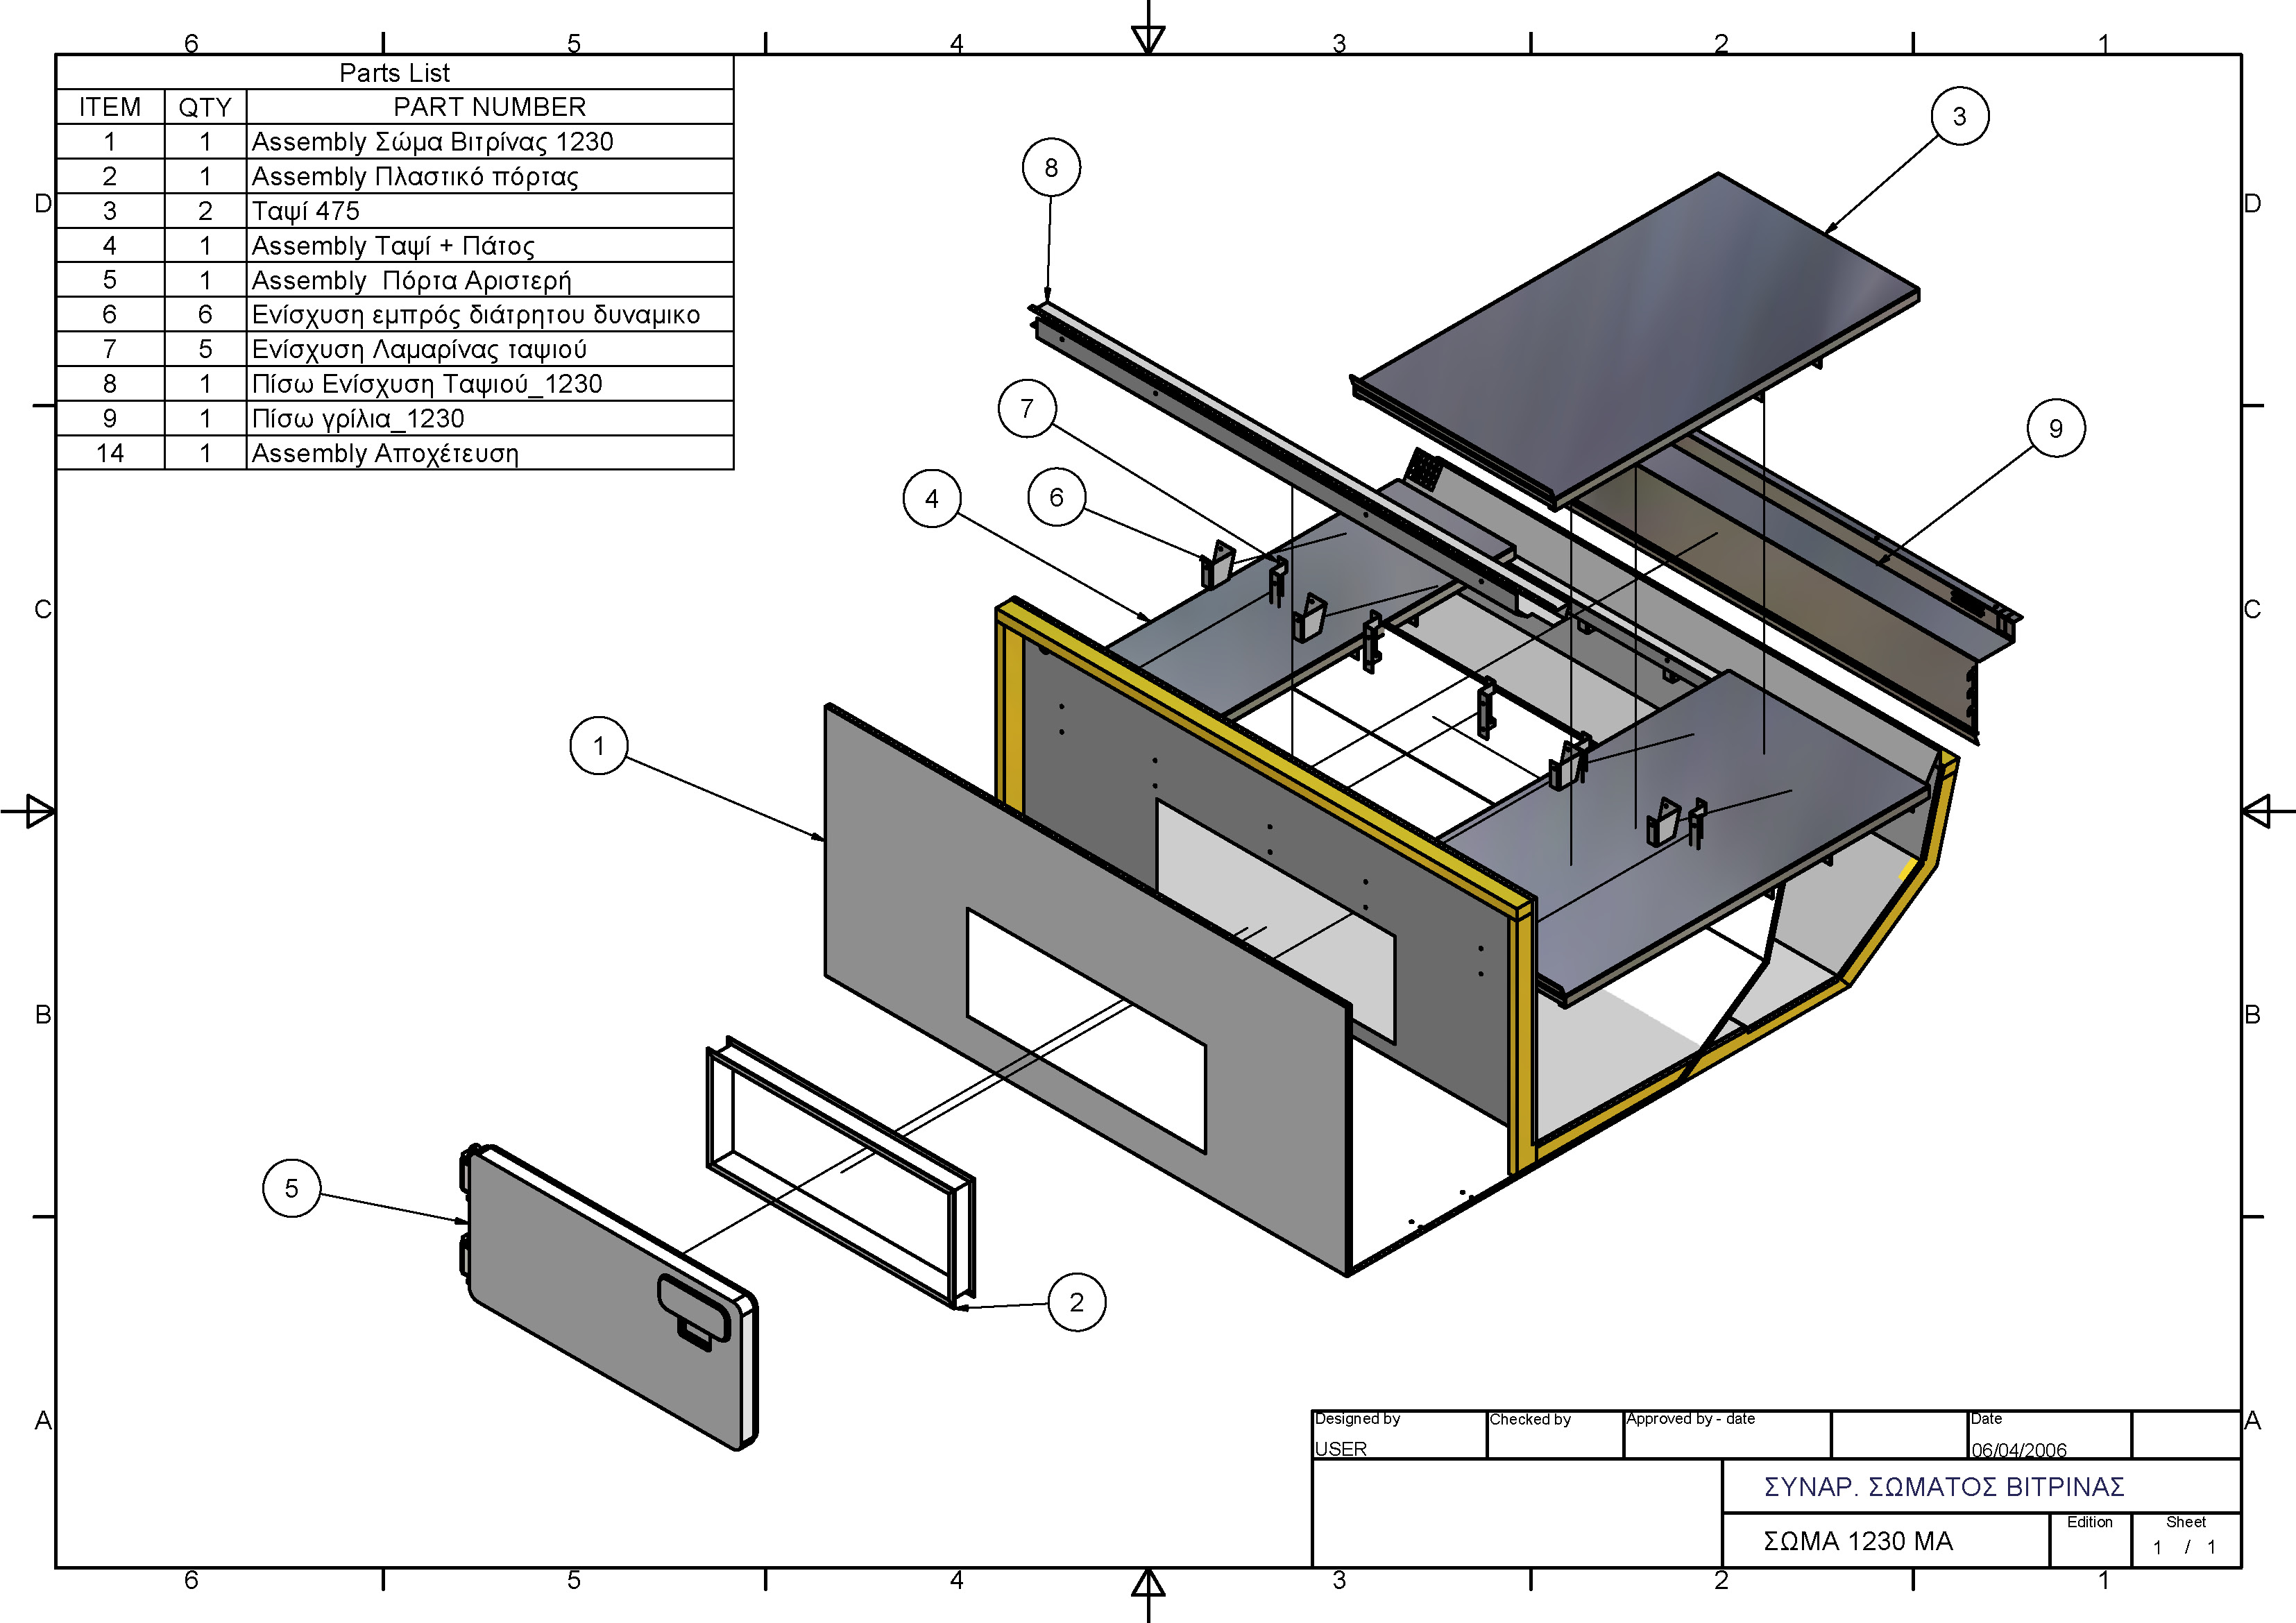 INTEGRAL | ENGINEERING - Manufacturing drawings